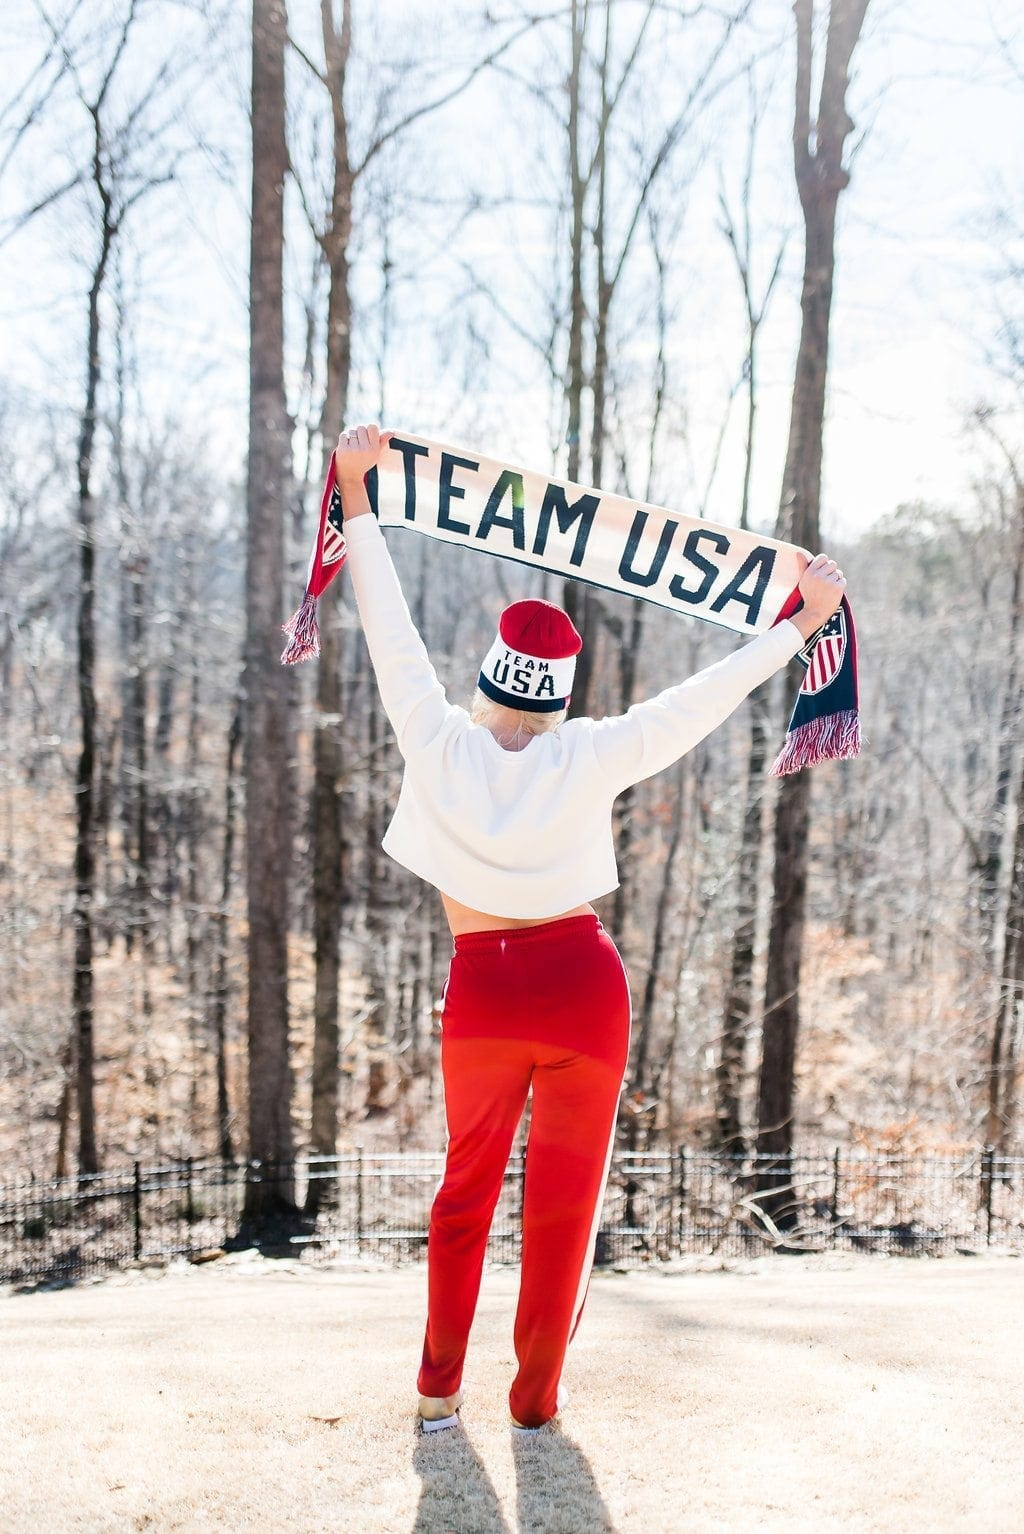 Team USA scarf and hat. How to rock that red white and blue!